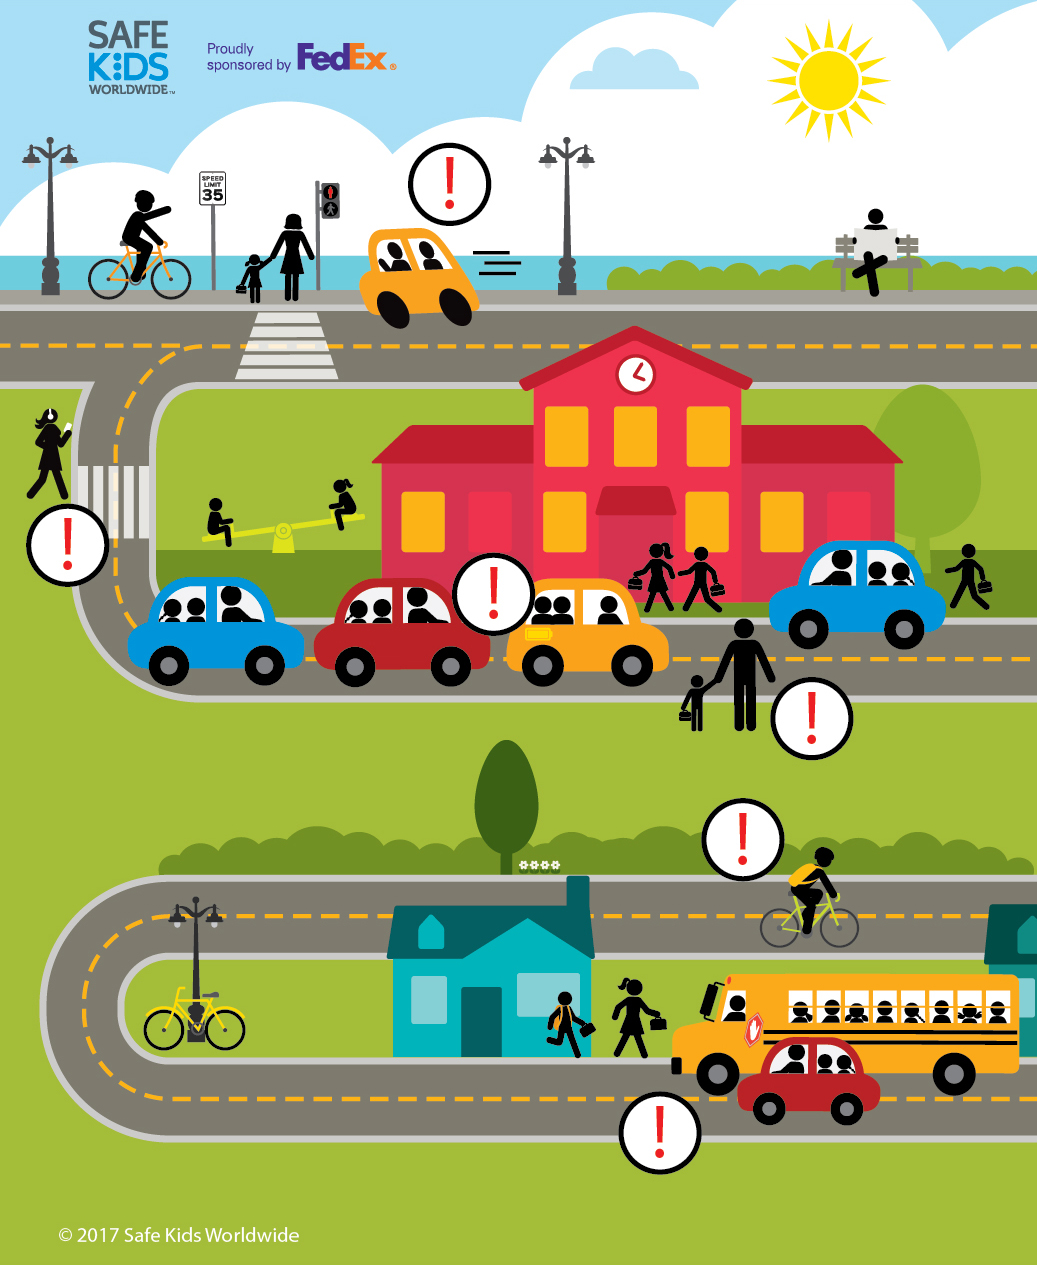 Take Action Toolkit: How to Fix an Unsafe School Zone